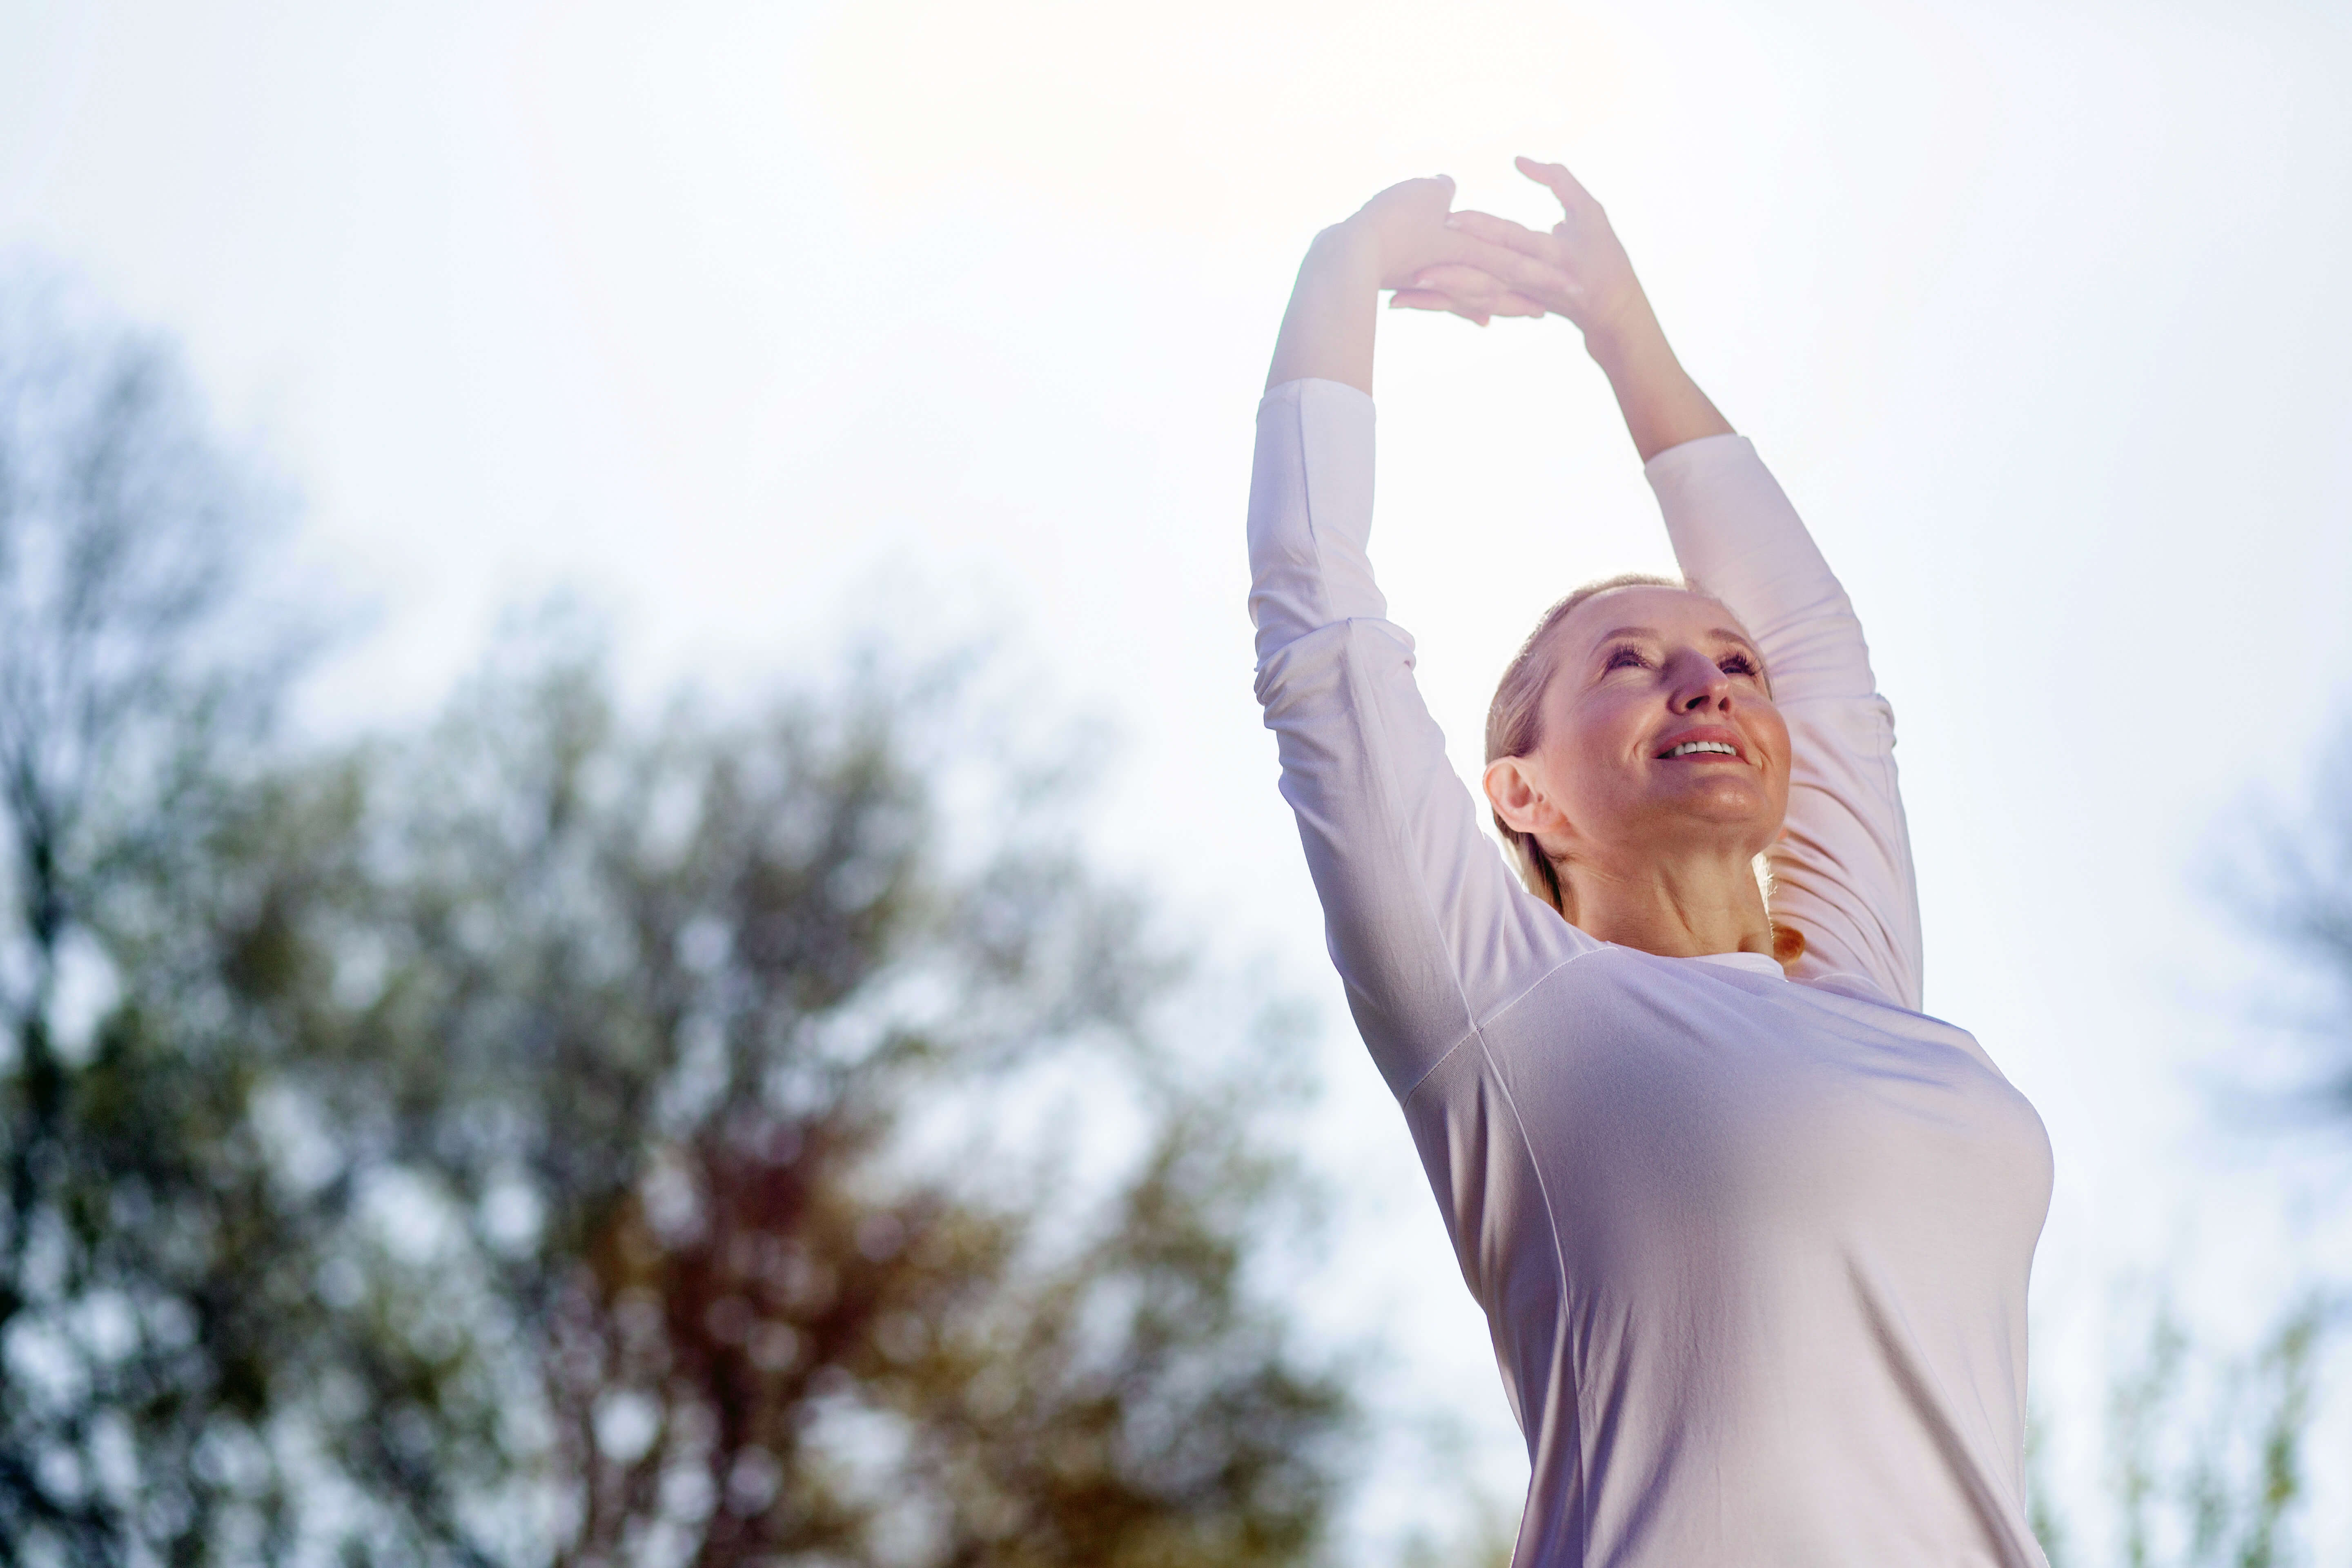 Exercising to improve physical health